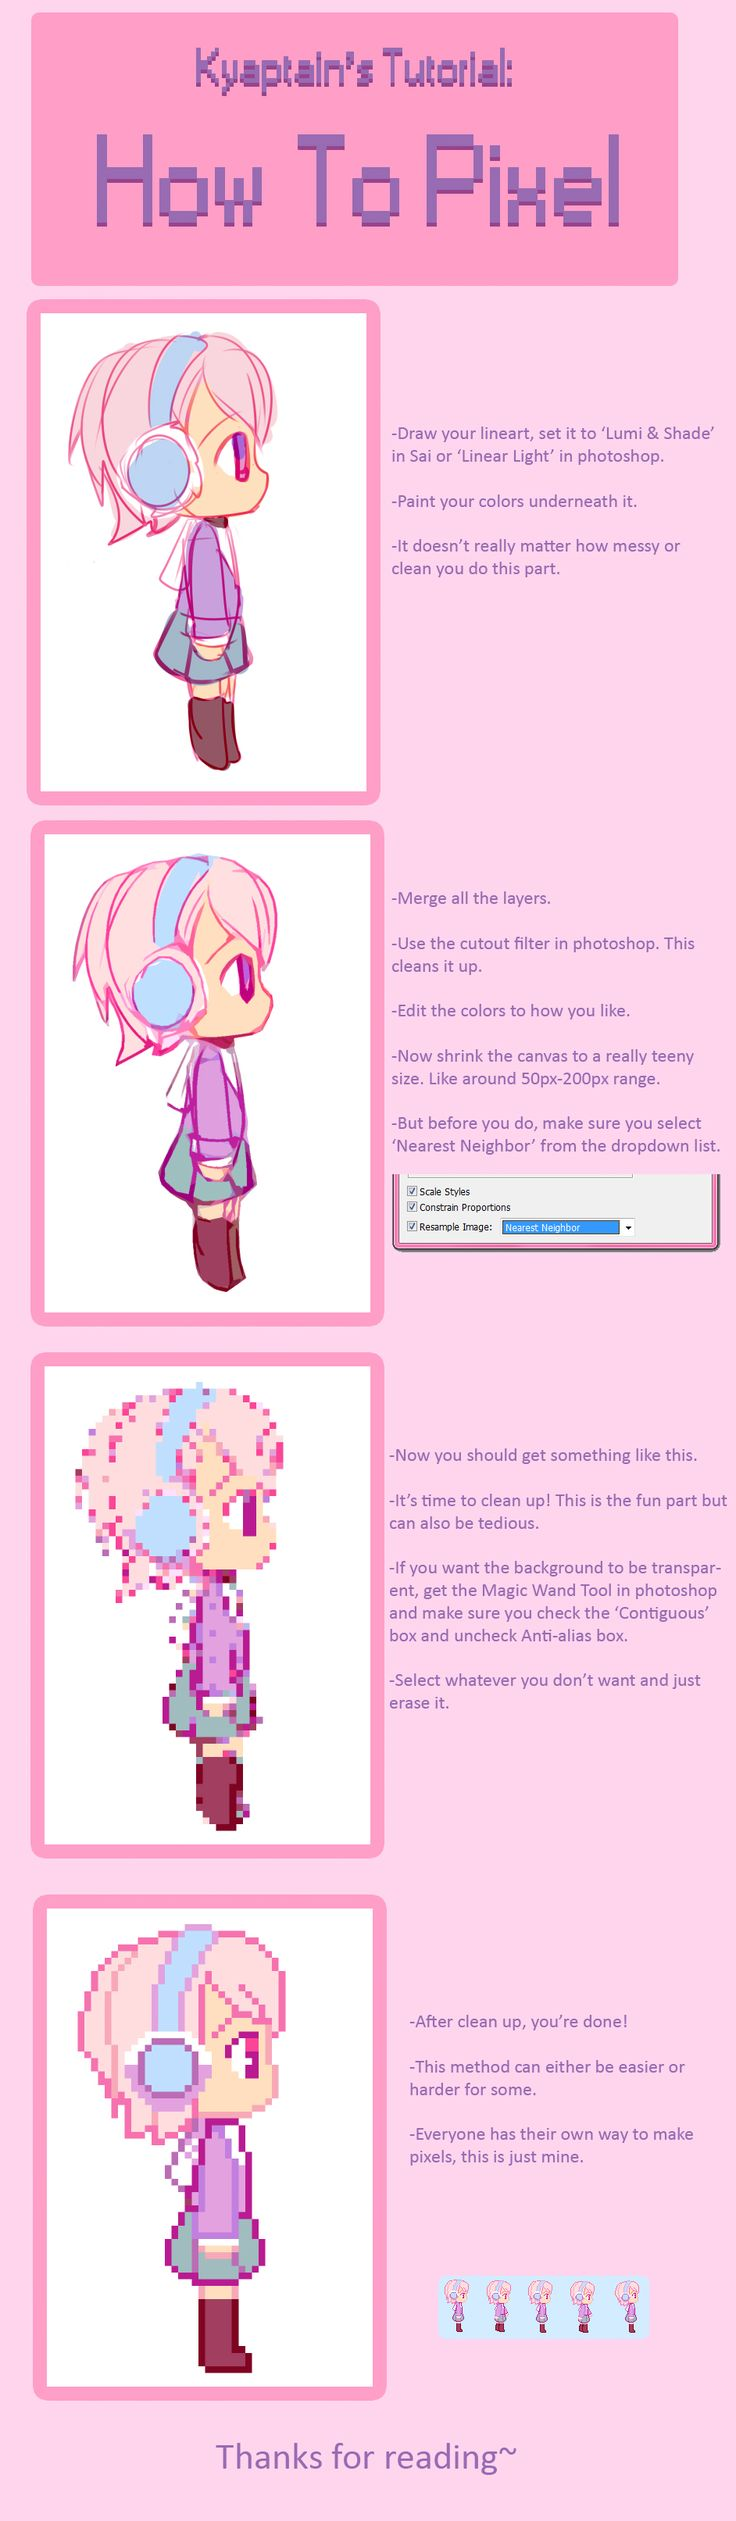 How To Pixel By Captainstrawberryiantart On @deviantart